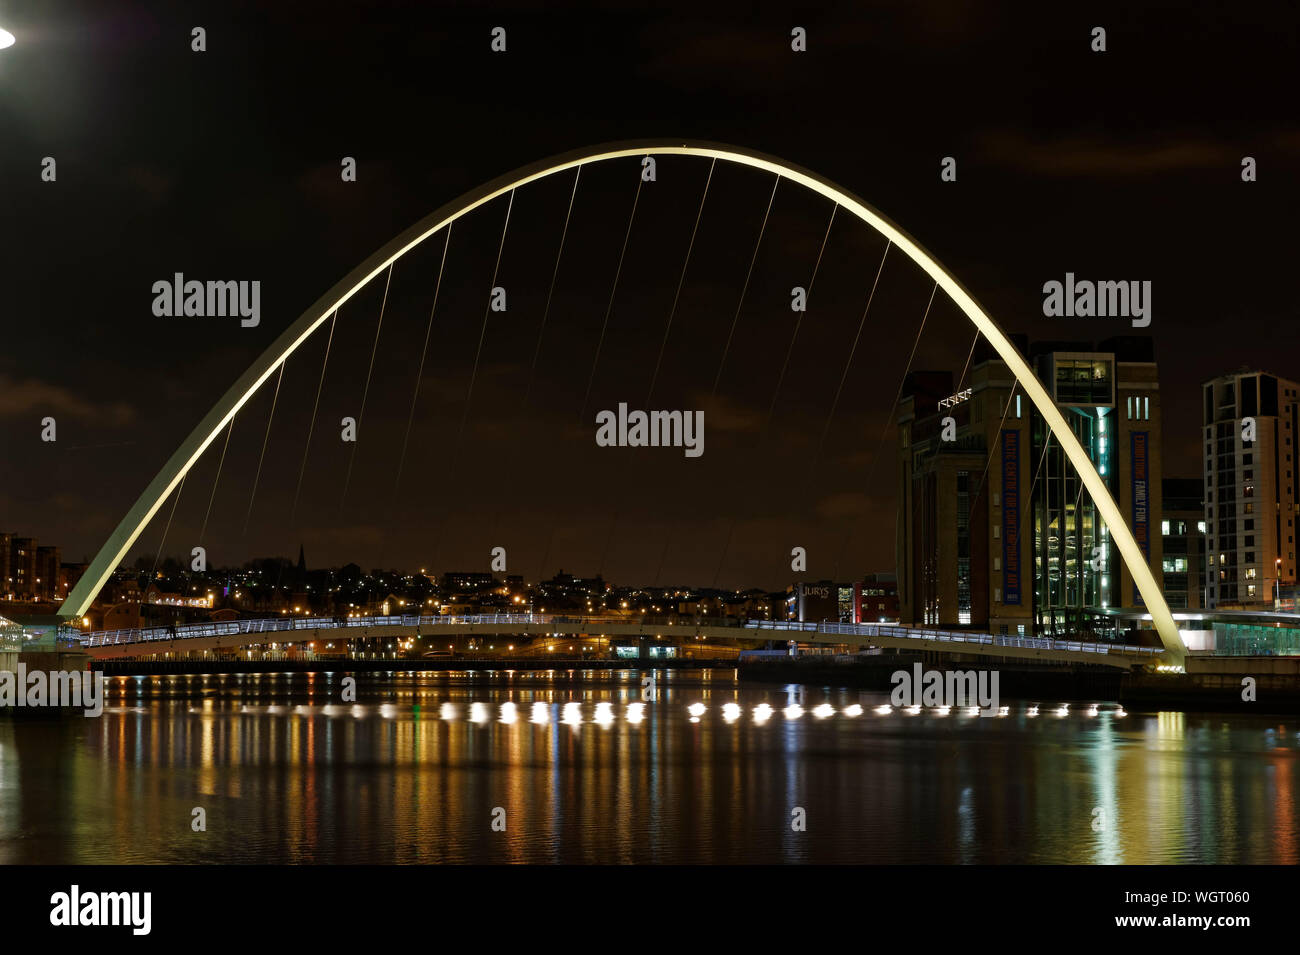 Illuminated Gateshead Millennium Bridge Over River At Night Stock Photo